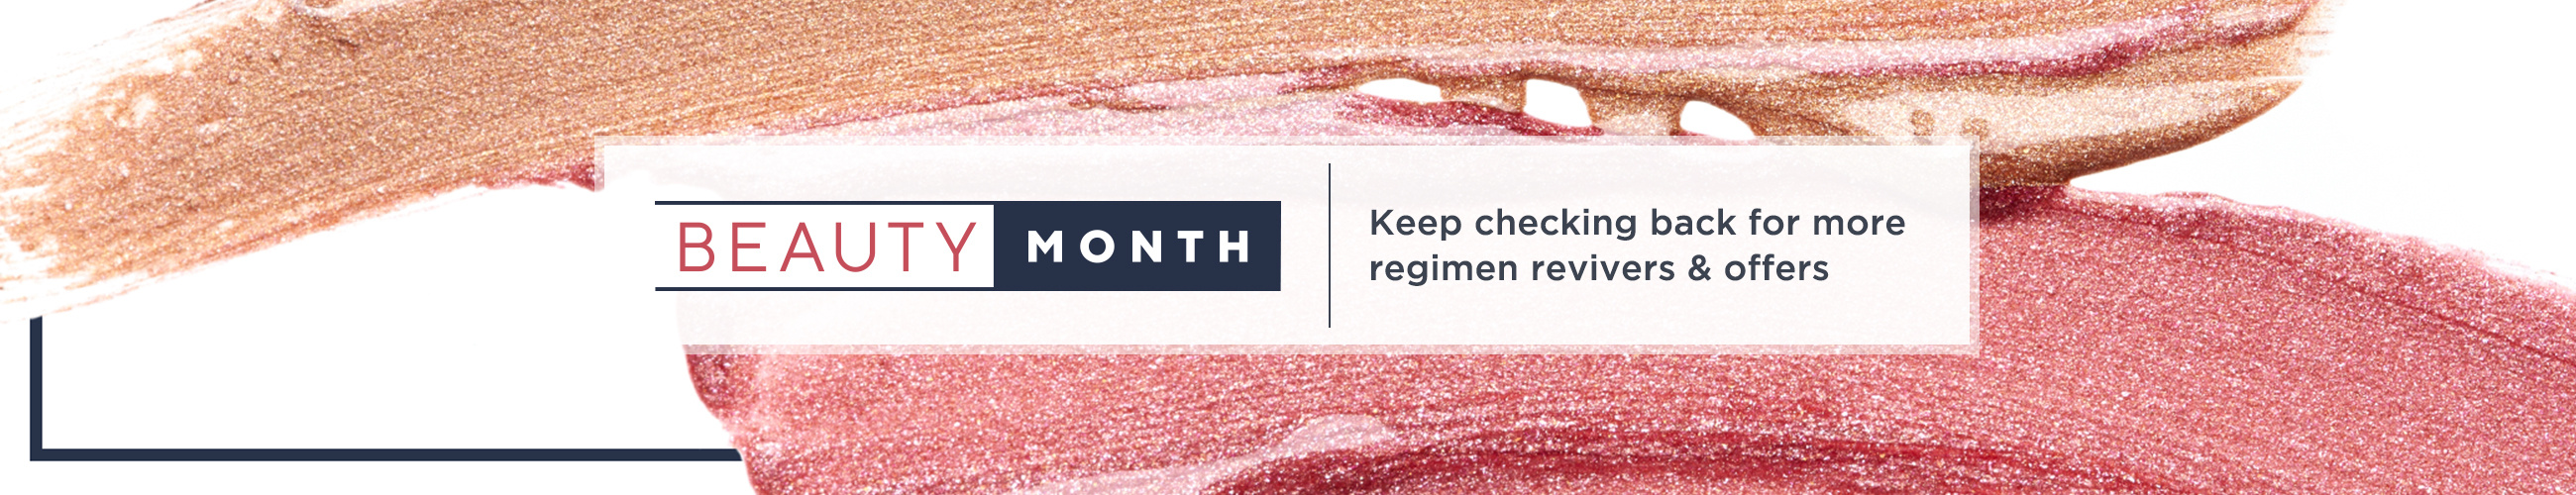 Beauty Month — Keep checking back for more regimen revivers & offers